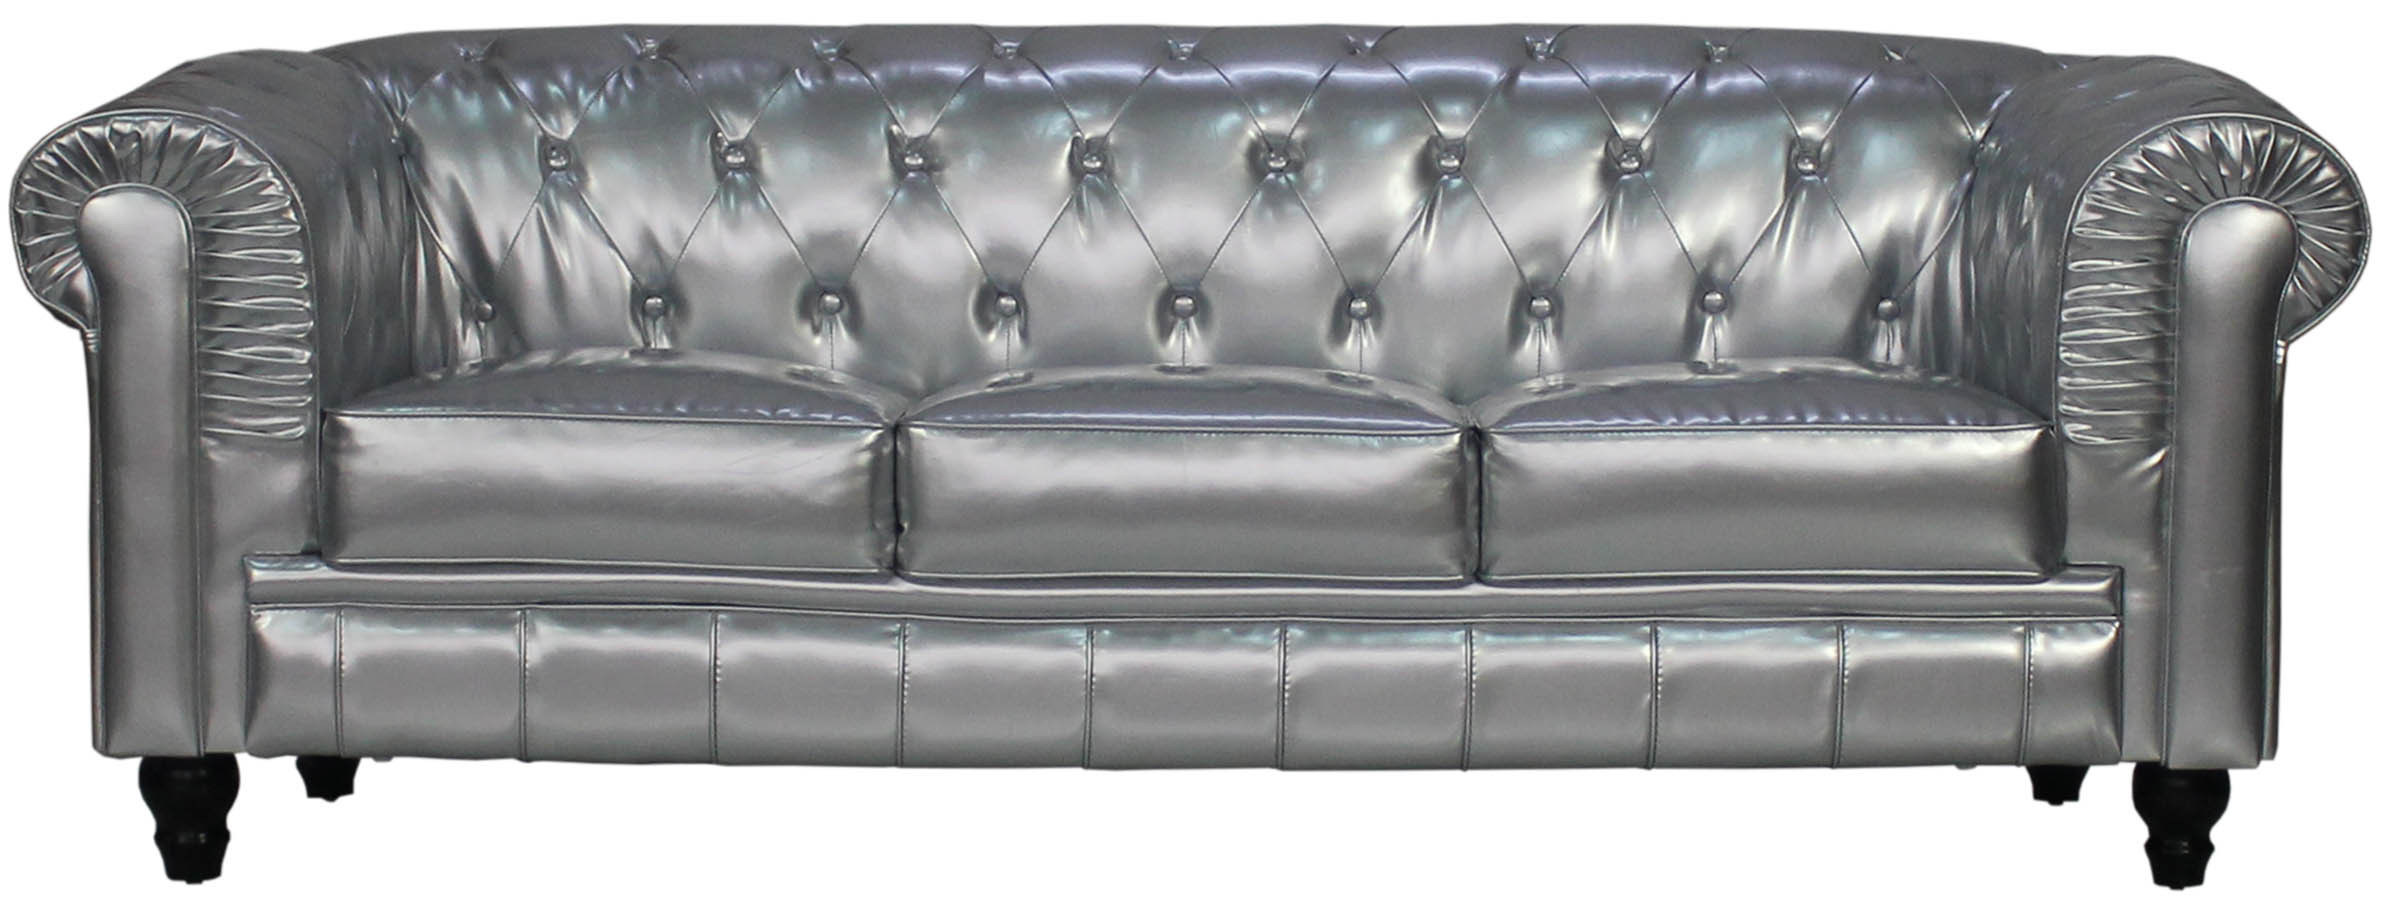 Beautiful Benjamin Classical 3 Seater PU Leather Sofa In Silver